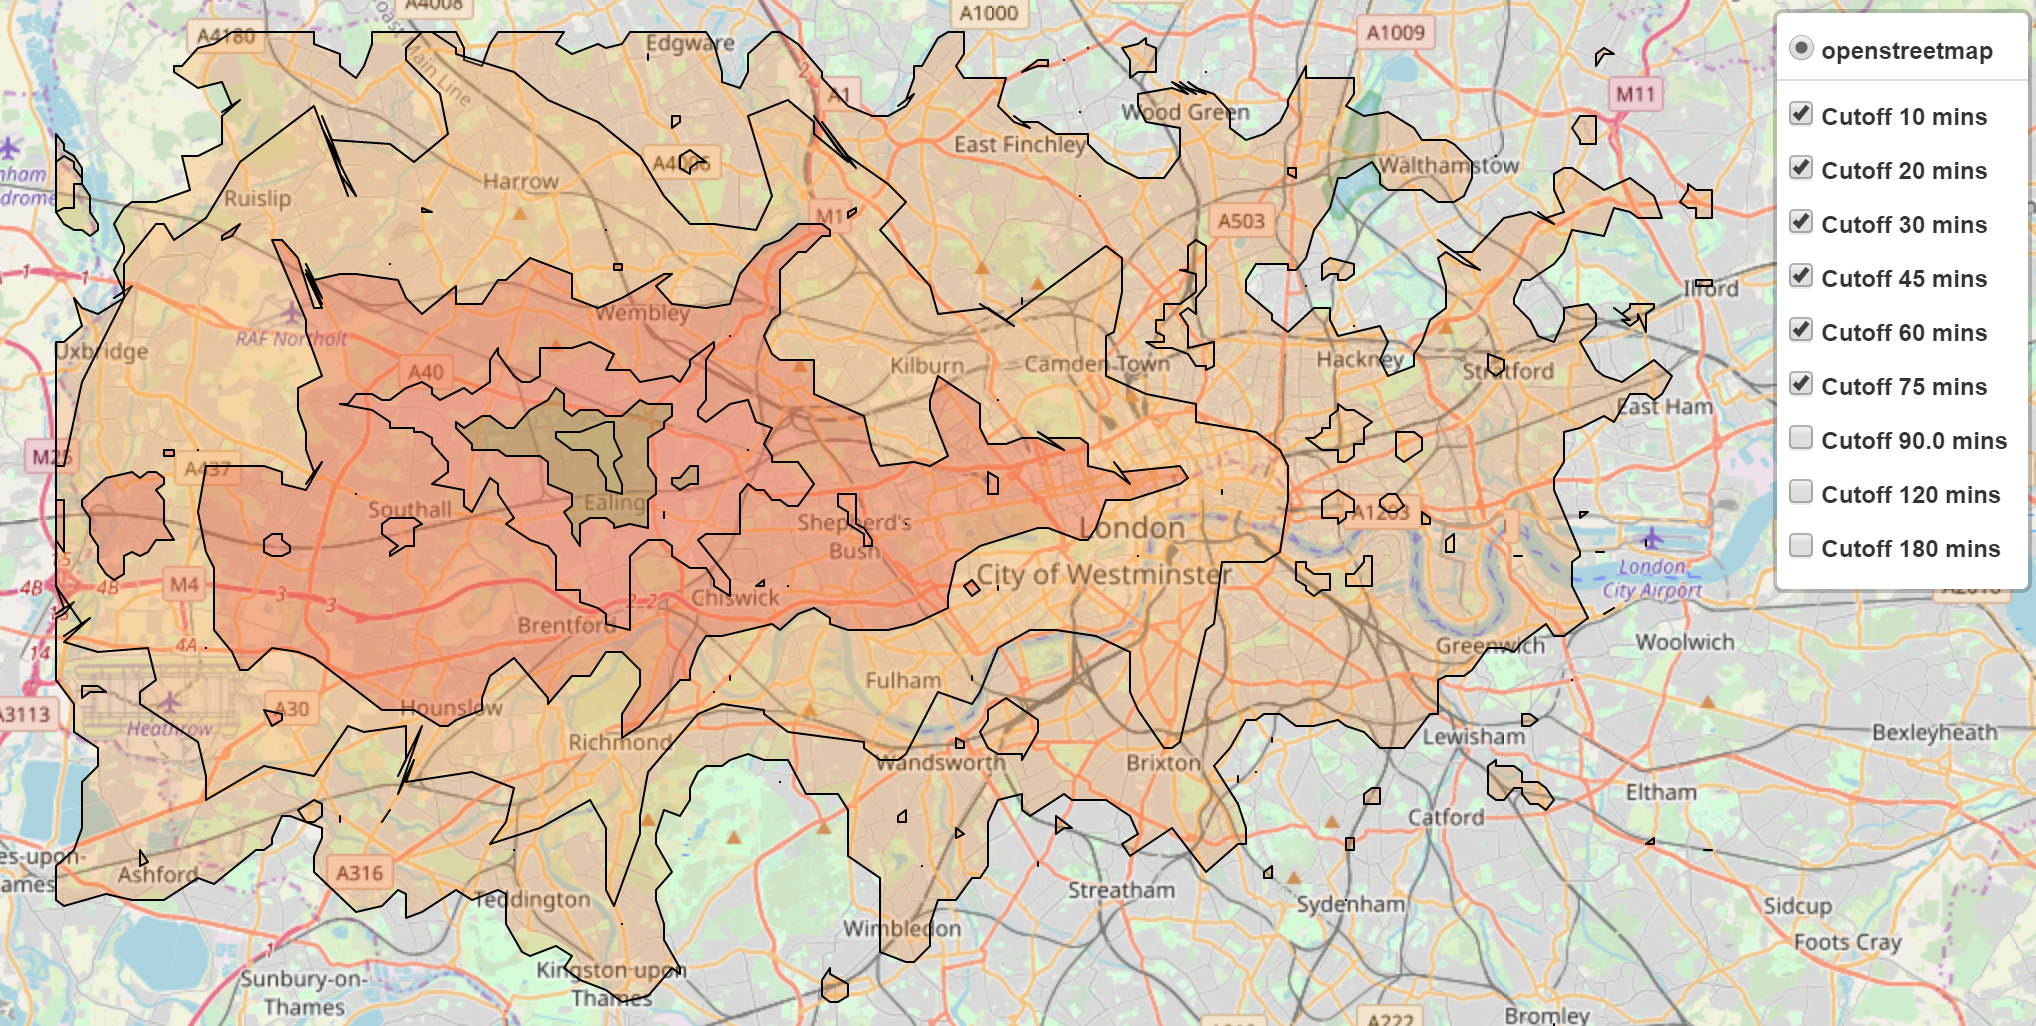 Creating a Modern Day Travel Map of London - Towards Data Science